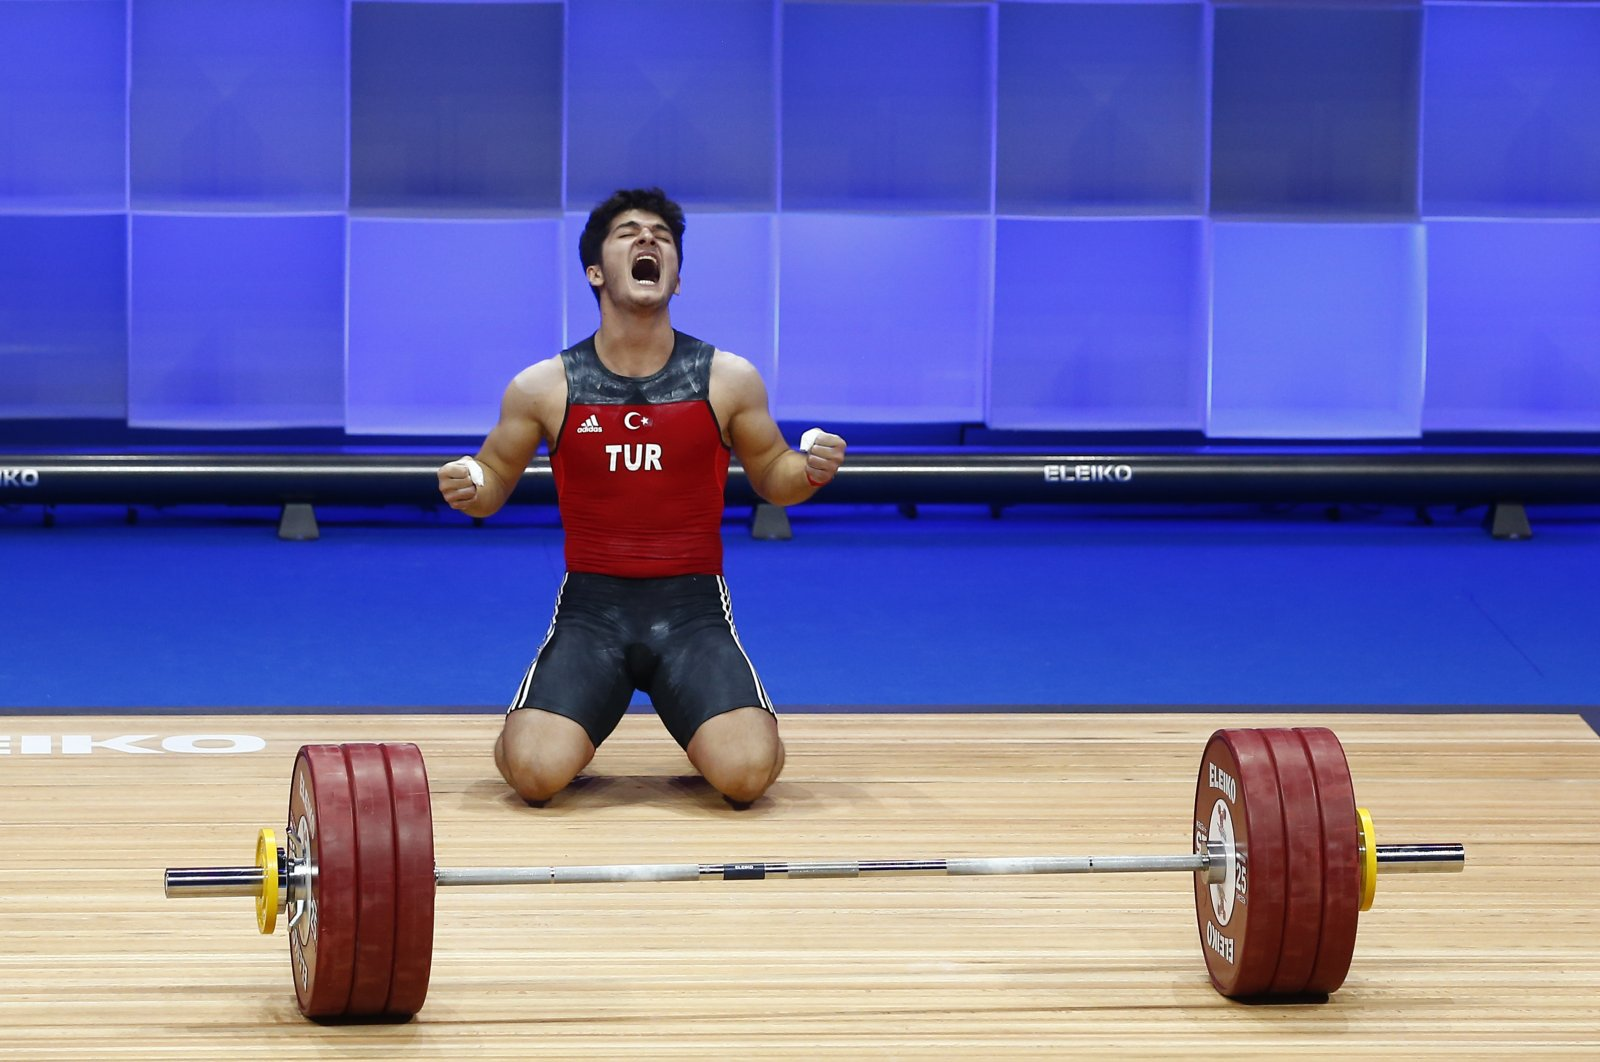 Turkish weightlifter Muhammed Özbek celebrates after winning gold at the European Weightlifting Championships in Moscow, Russia, April 5, 2021. (AA Photo)